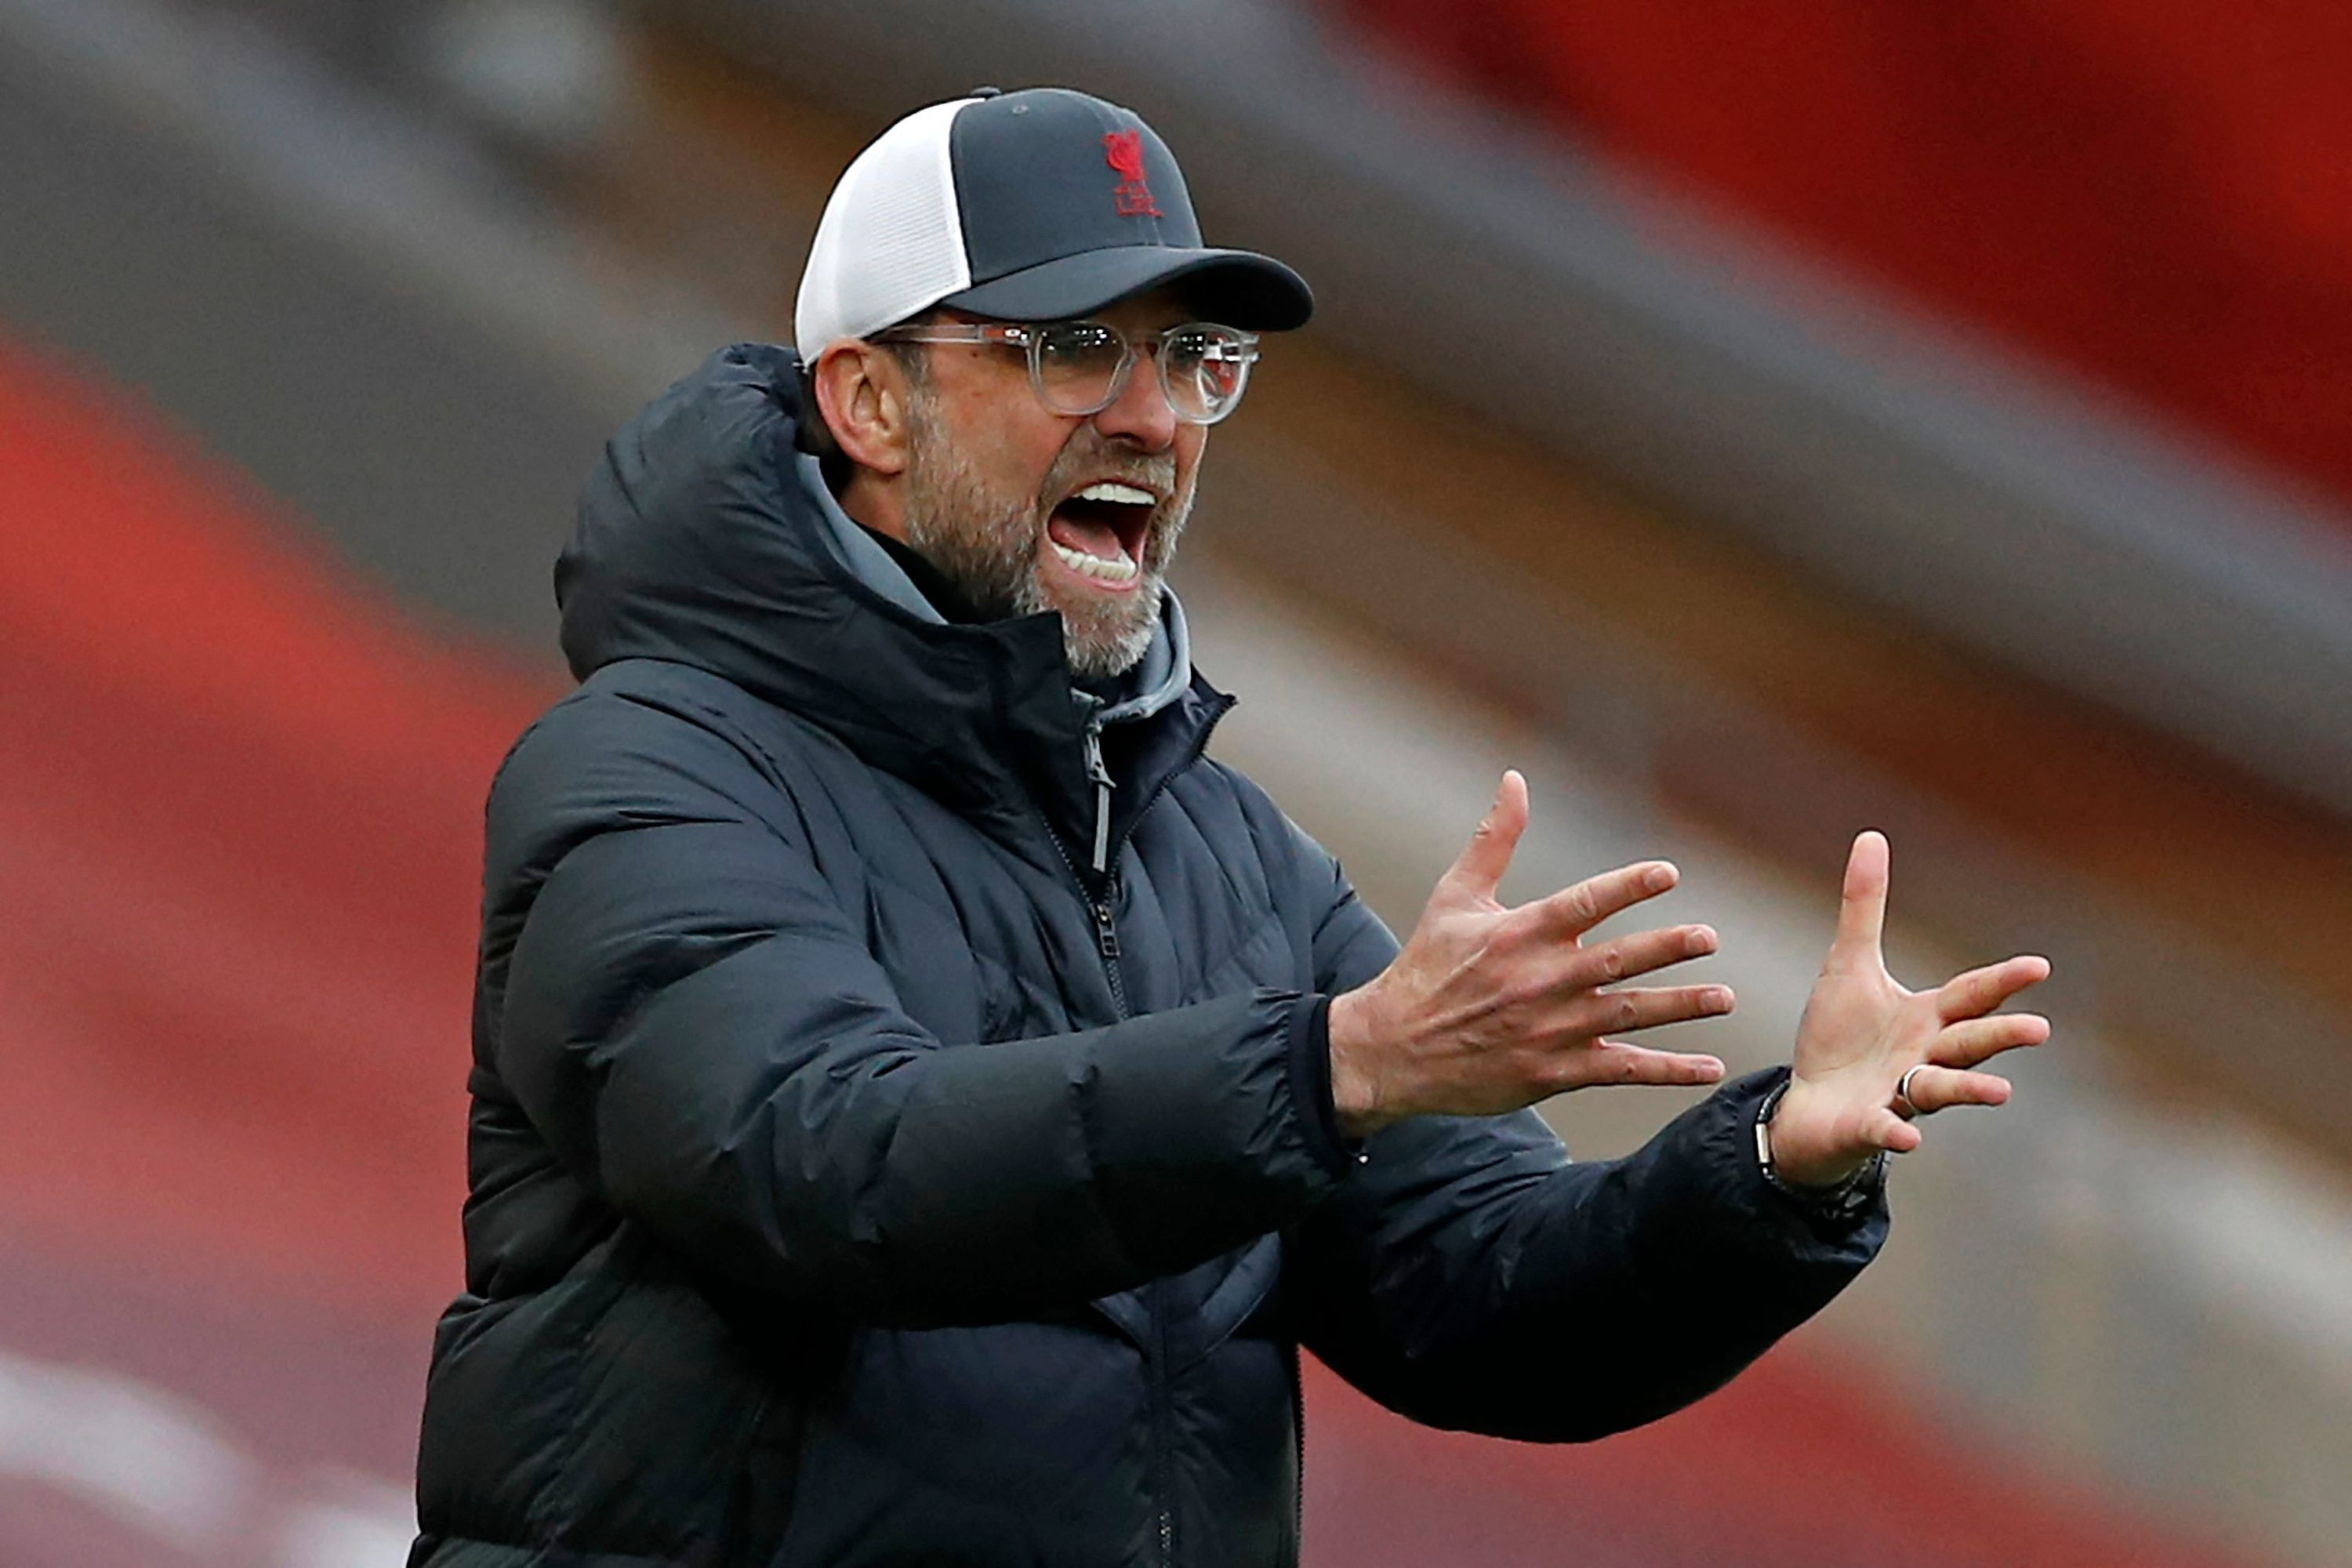 Liverpool are in 'crisis' and 'Jurgen Klopp isn't doing his job properly' as Reds suffer sixth successive Anfield defeat